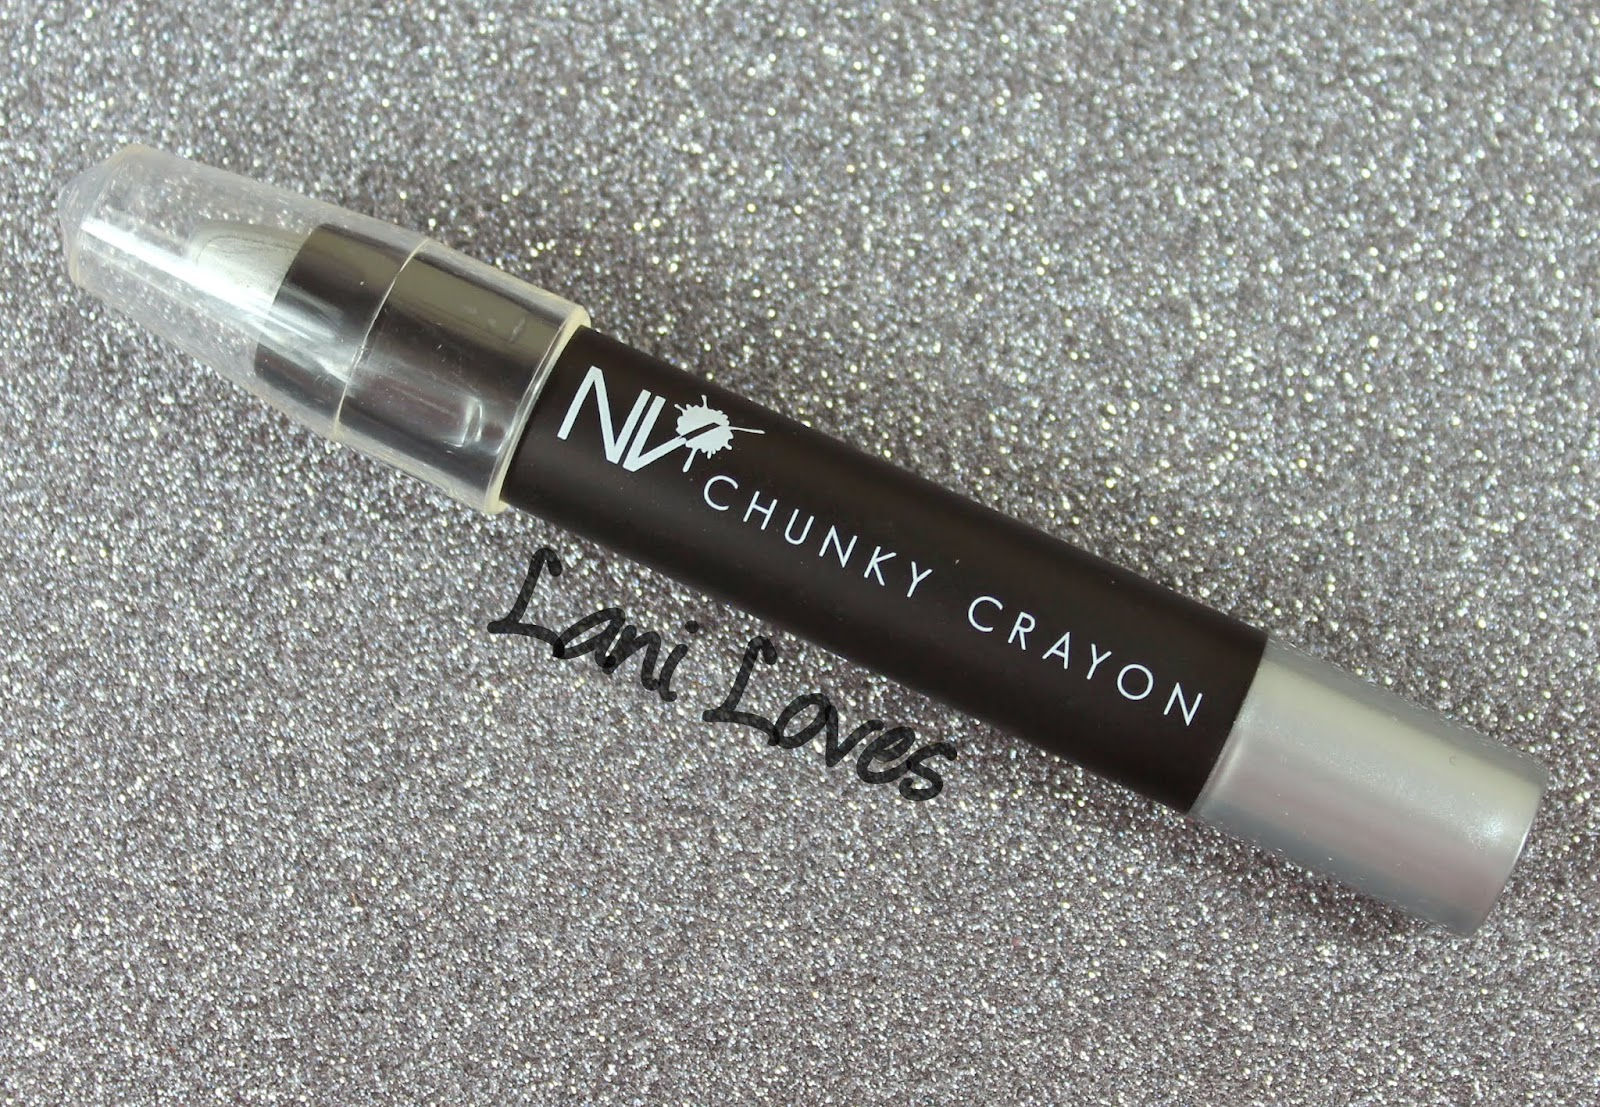 NV Chunky Crayon Eye Crayon - Platinum preview